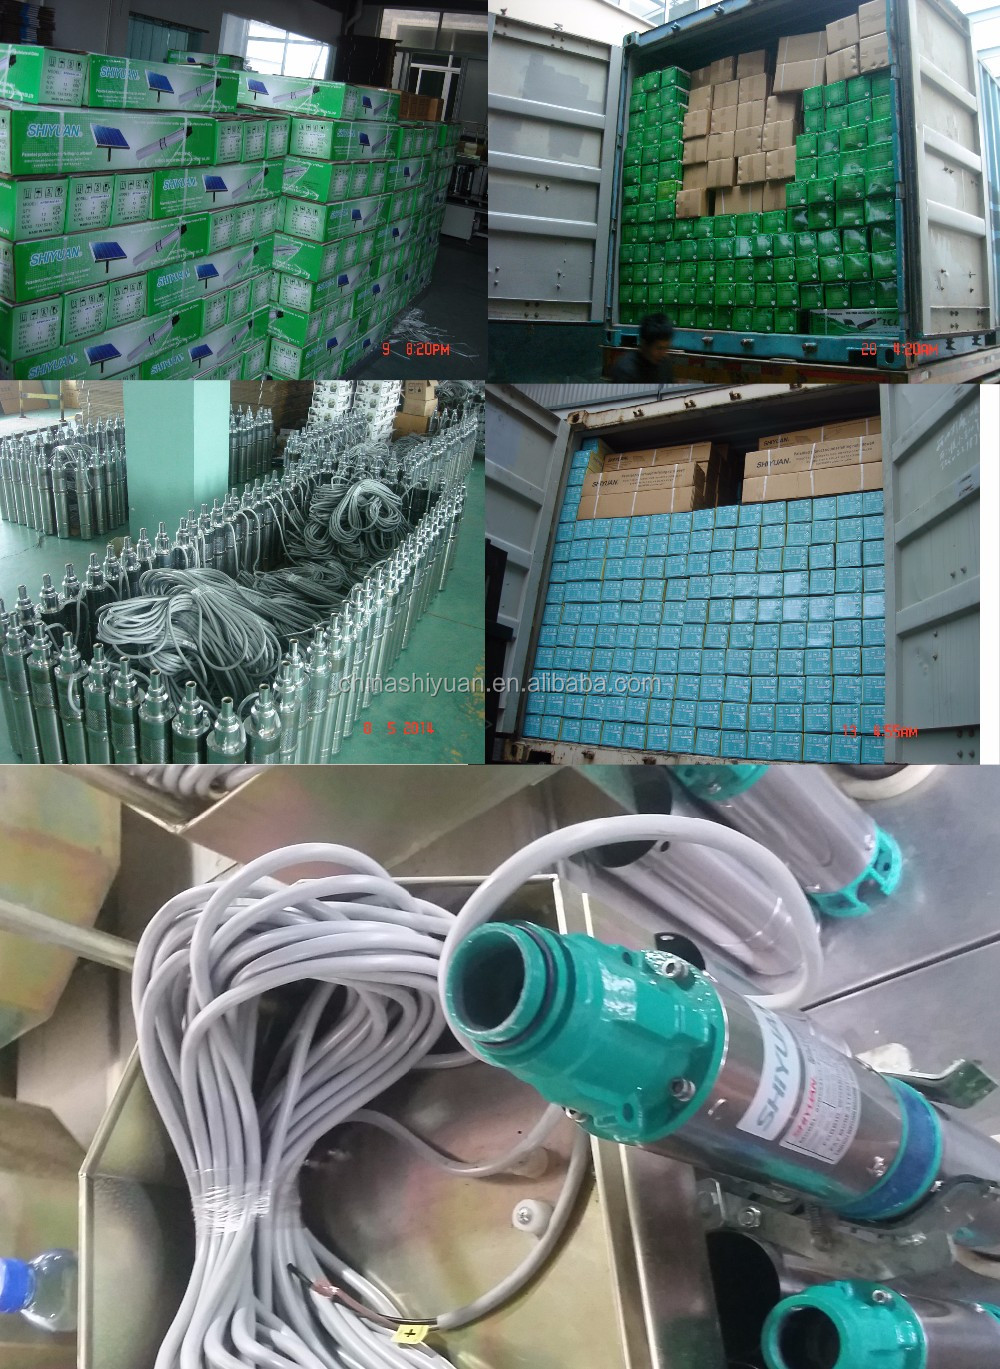 HIGH PRESSURE Submersible pump DC 12-18V 150W with 20Mcable.